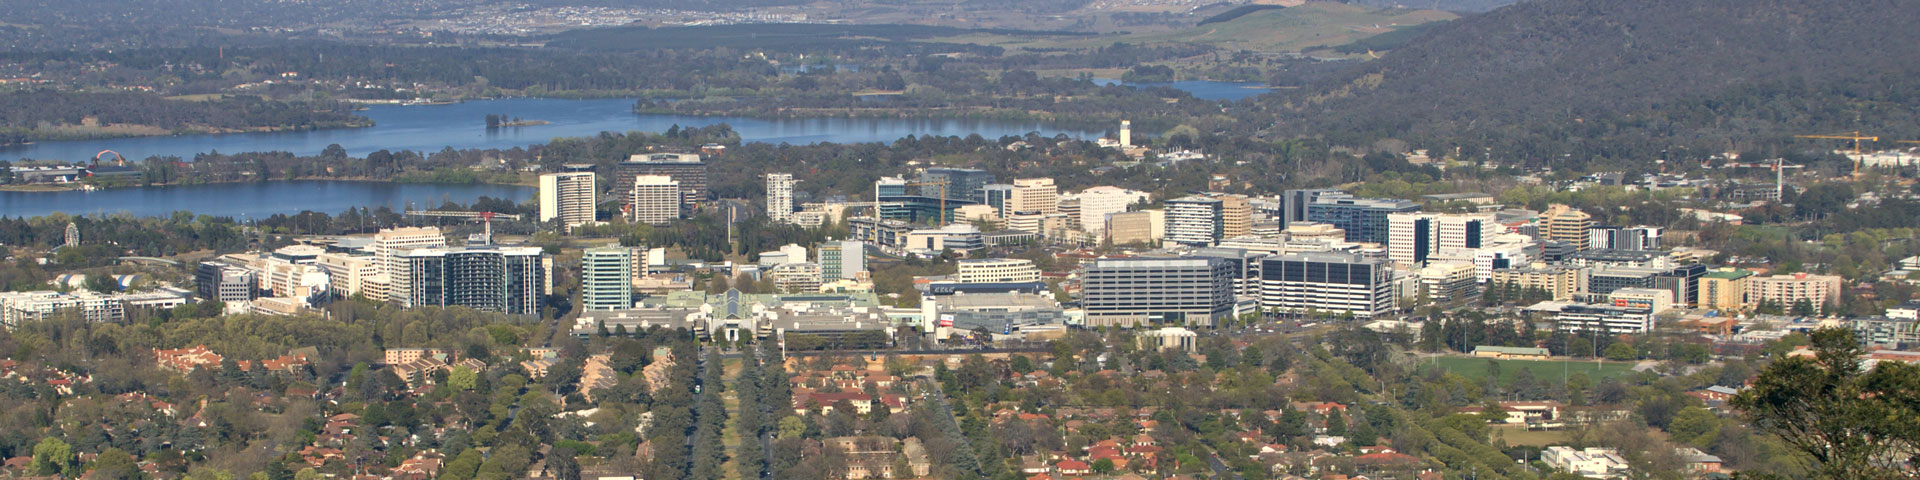 Skyline view of Canberra